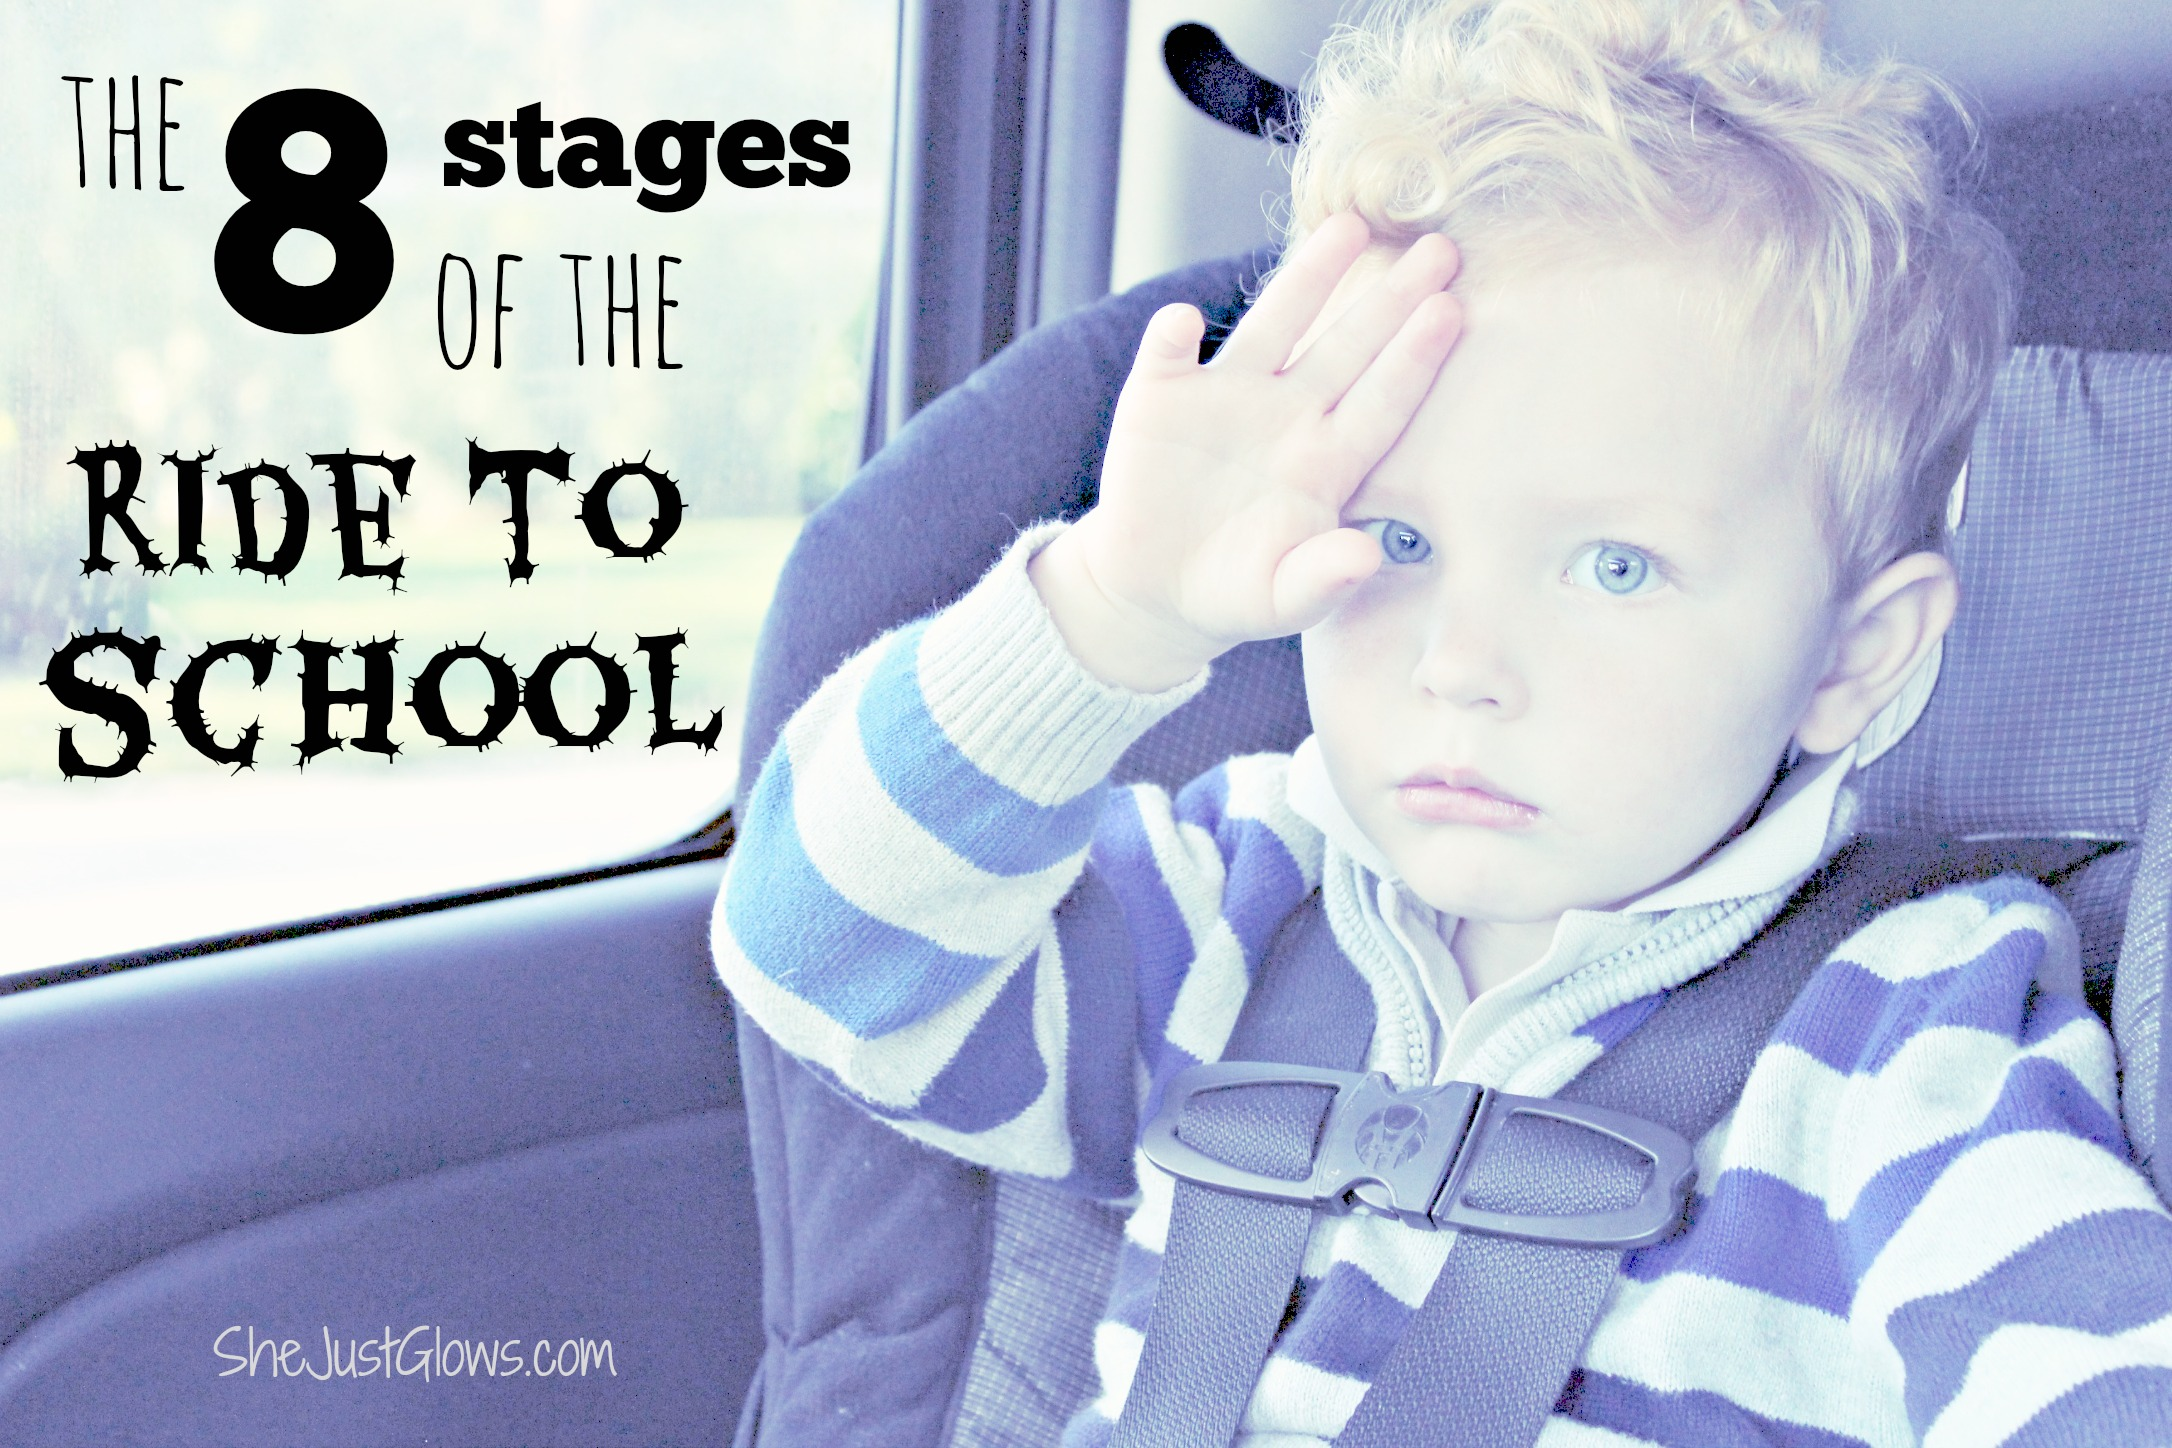 The 8 Stages of the Ride to School SheJustGlows.com